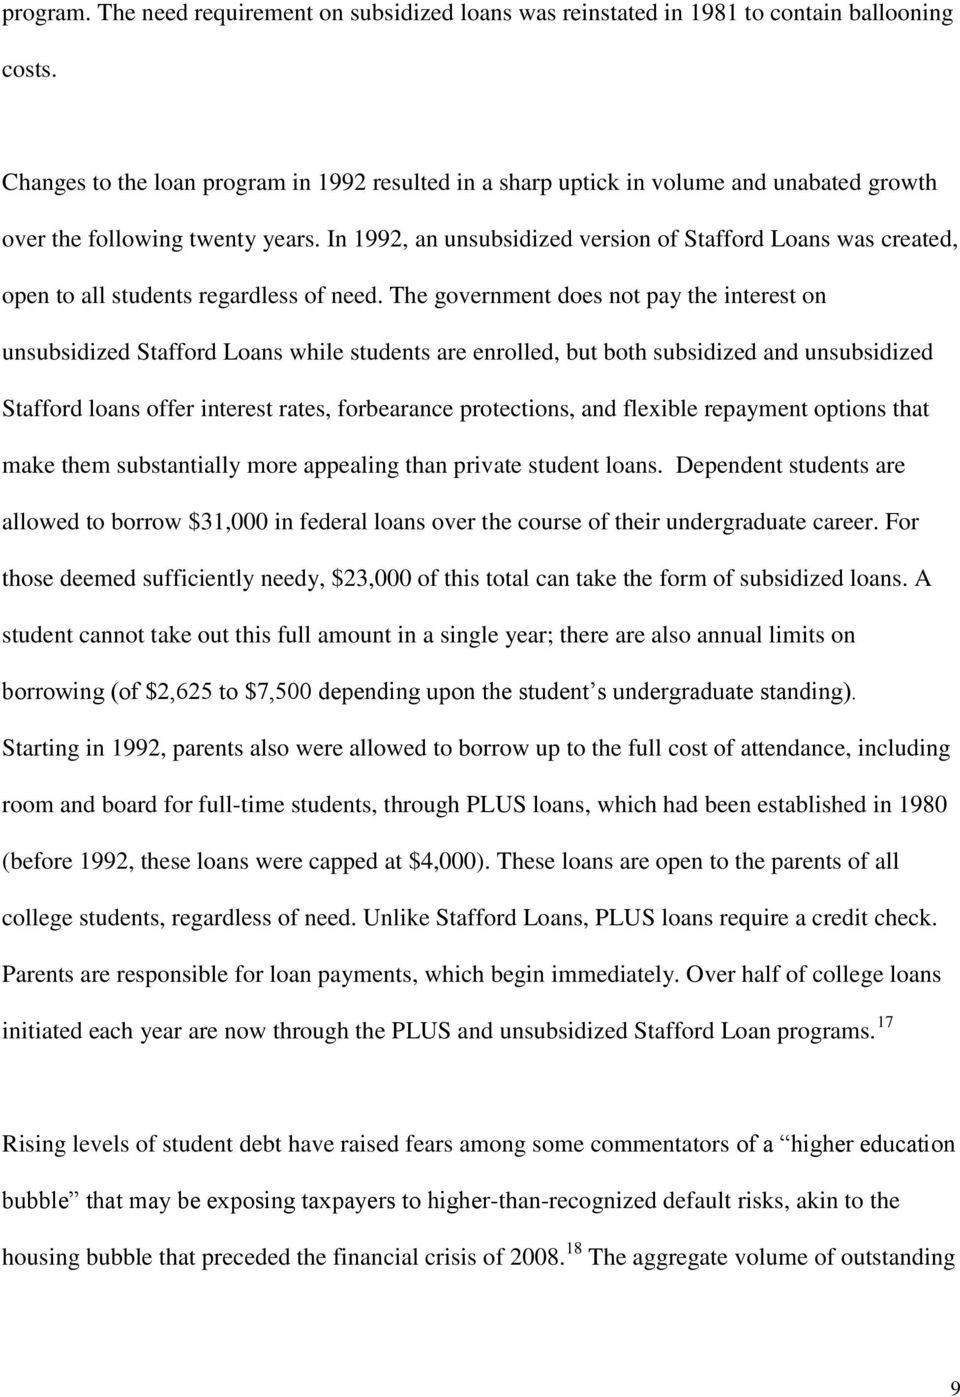 In 1992, an unsubsidized version of Stafford Loans was created, open to all students regardless of need.